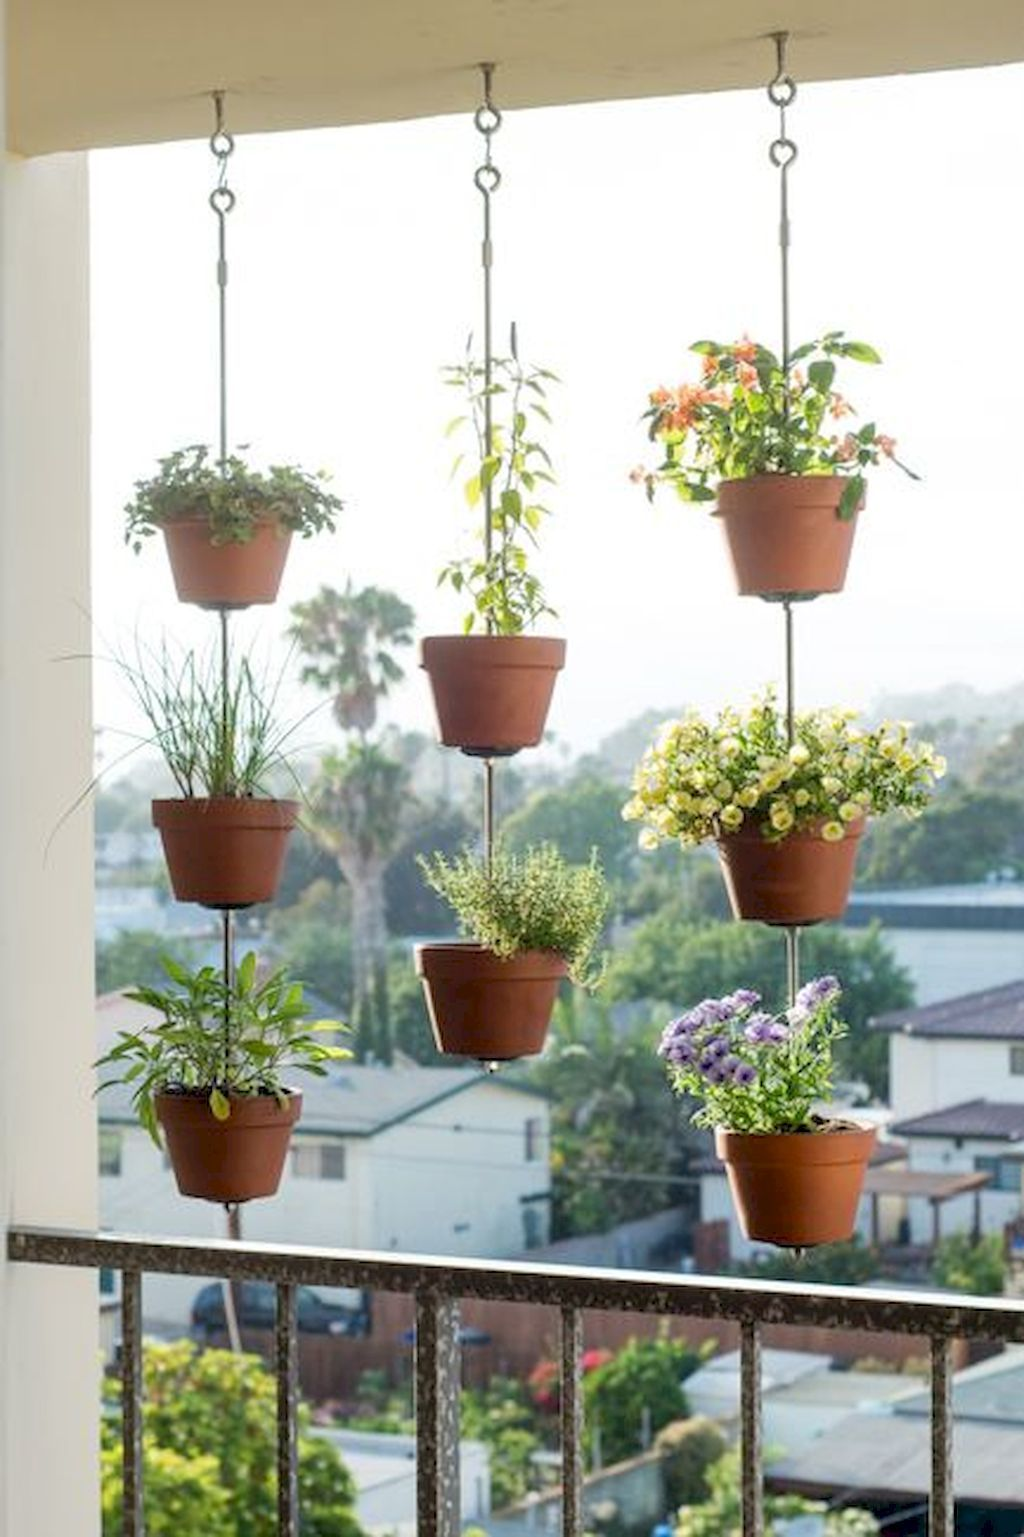 05 cozy apartment balcony decorating ideas - HomeSpecially #apartmentbalconydecorating